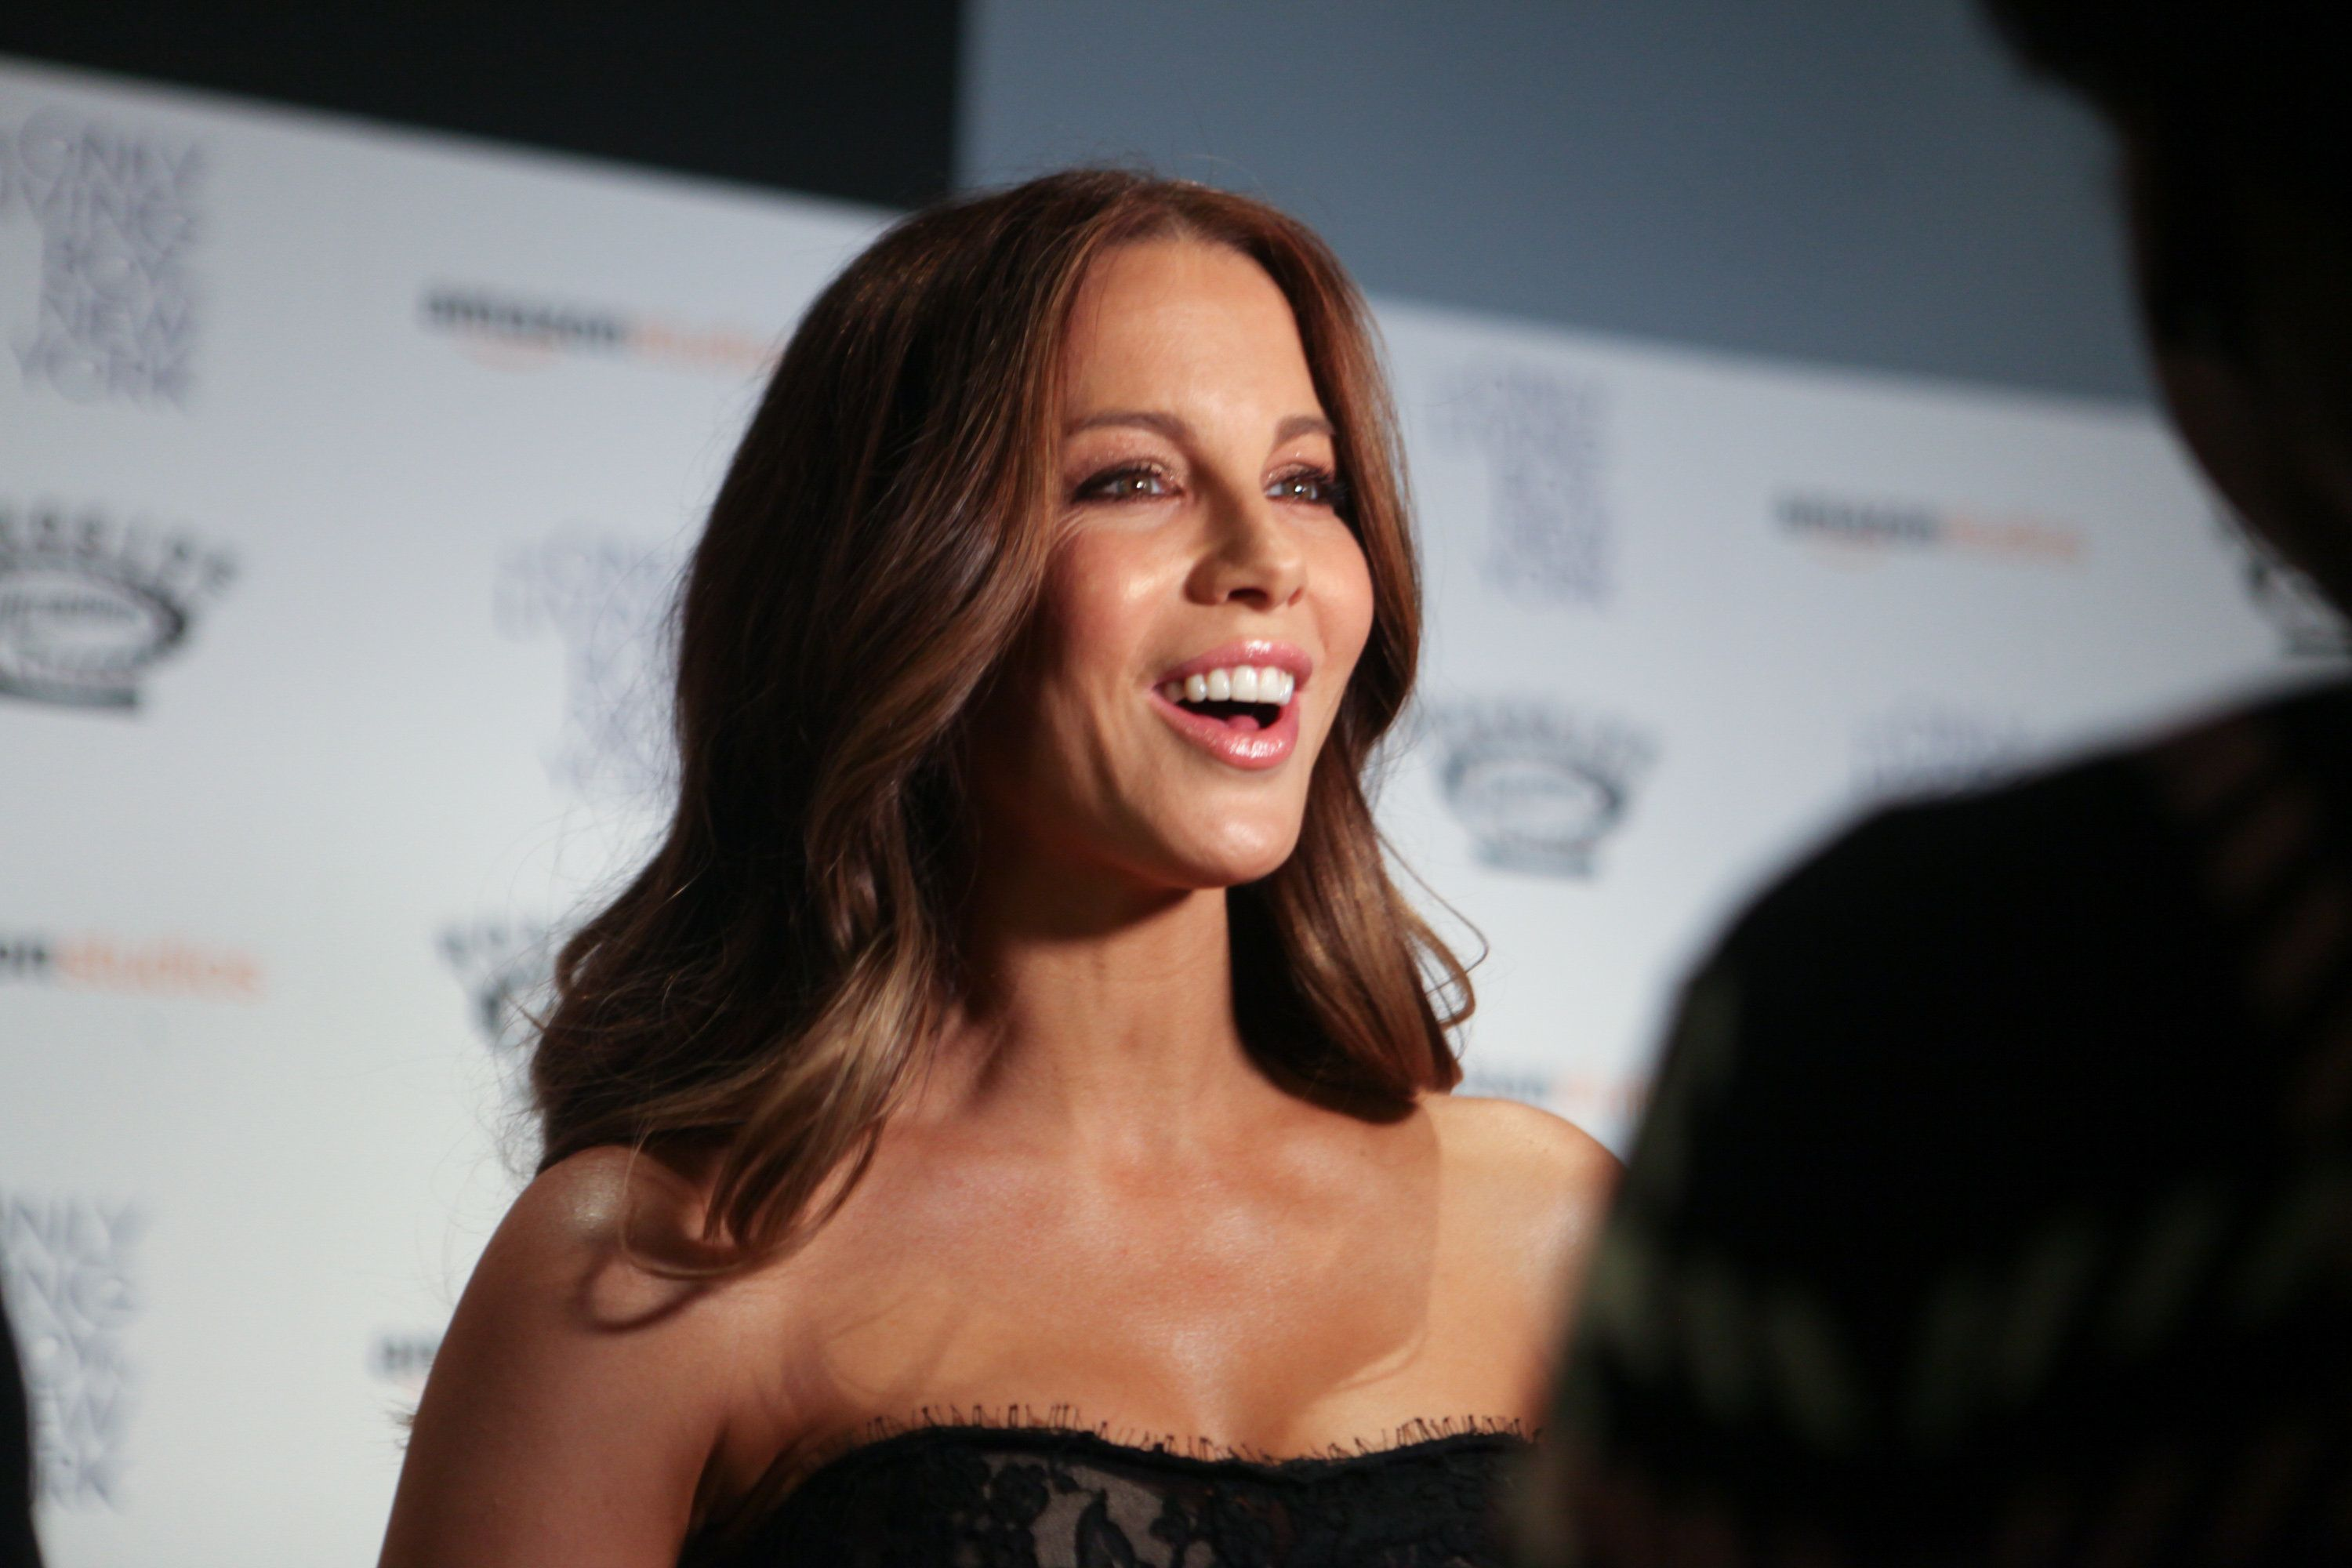 Kate Beckinsale's Response To Body Shaming Is A